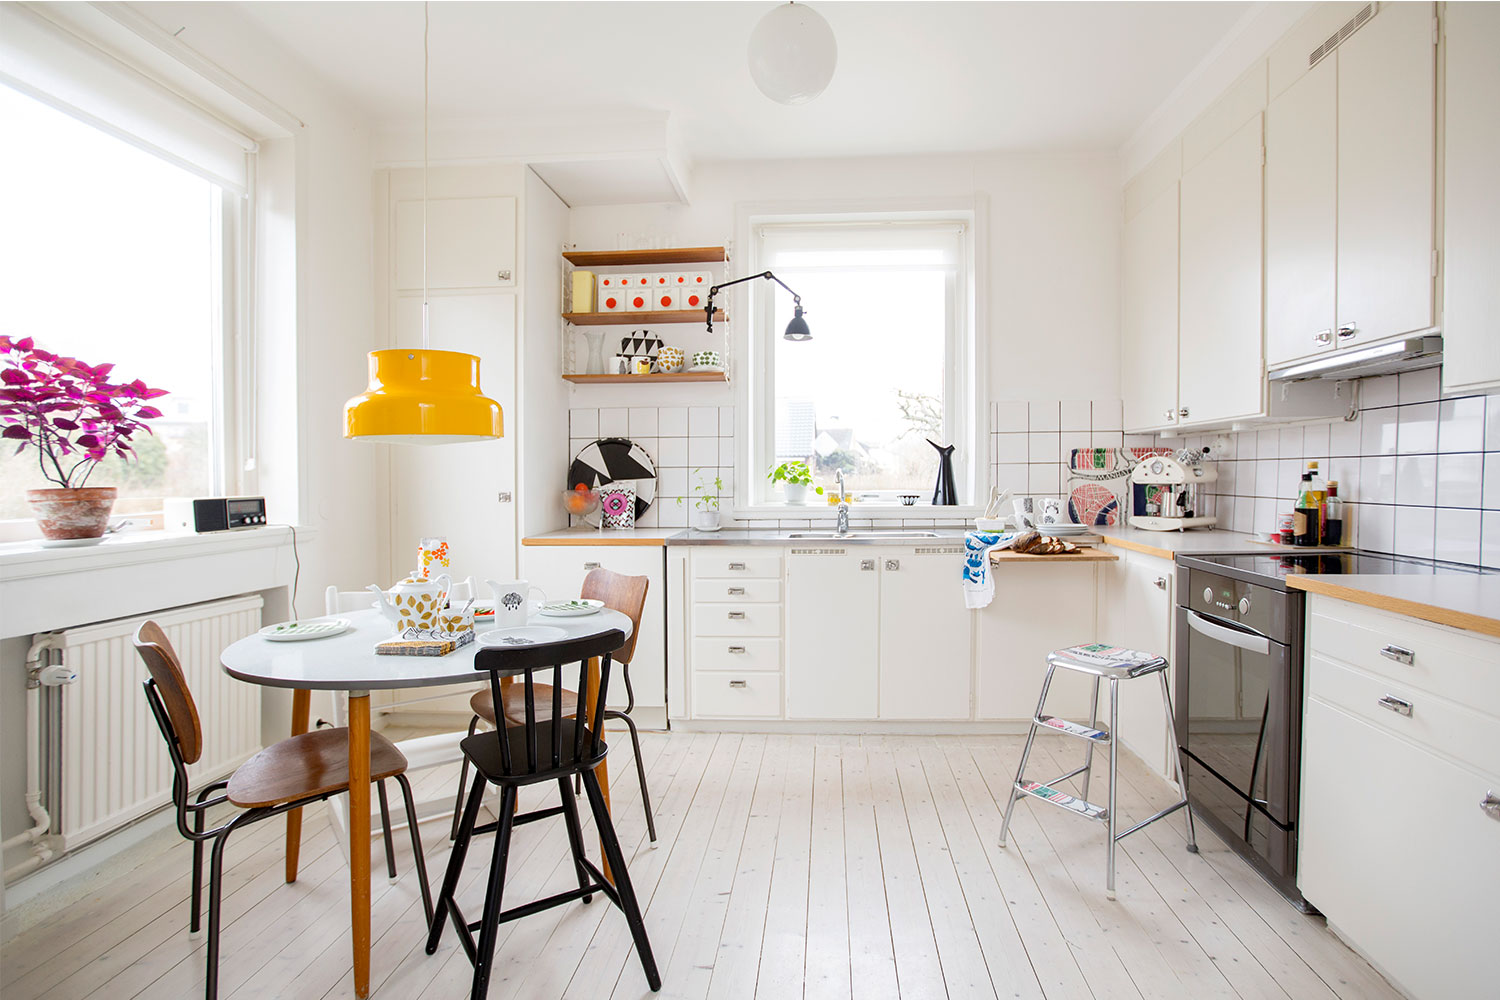 stunning scandinavian interior design | What is Scandinavian interior design? Your complete guide ...